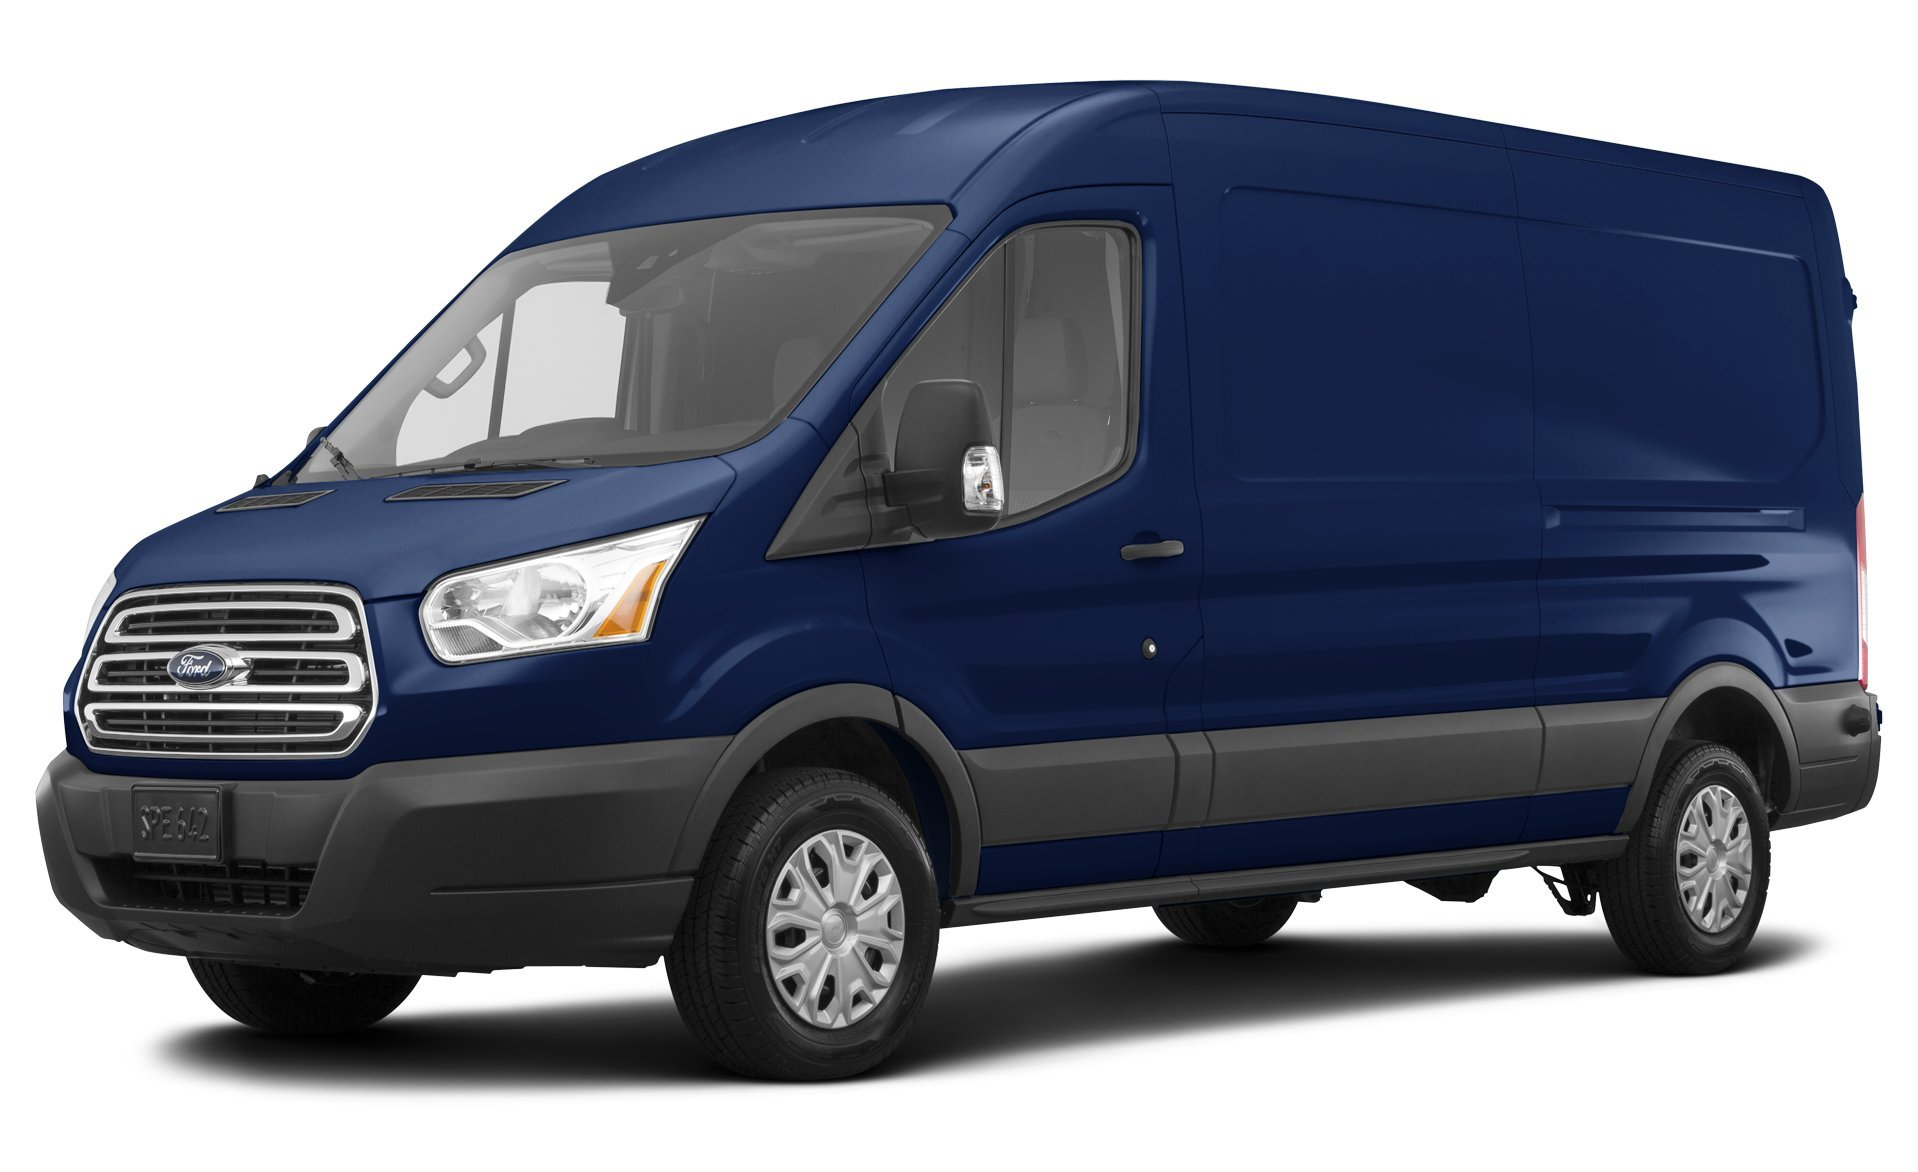 Amazon 2018 Ford Transit 350 HD Reviews and Specs